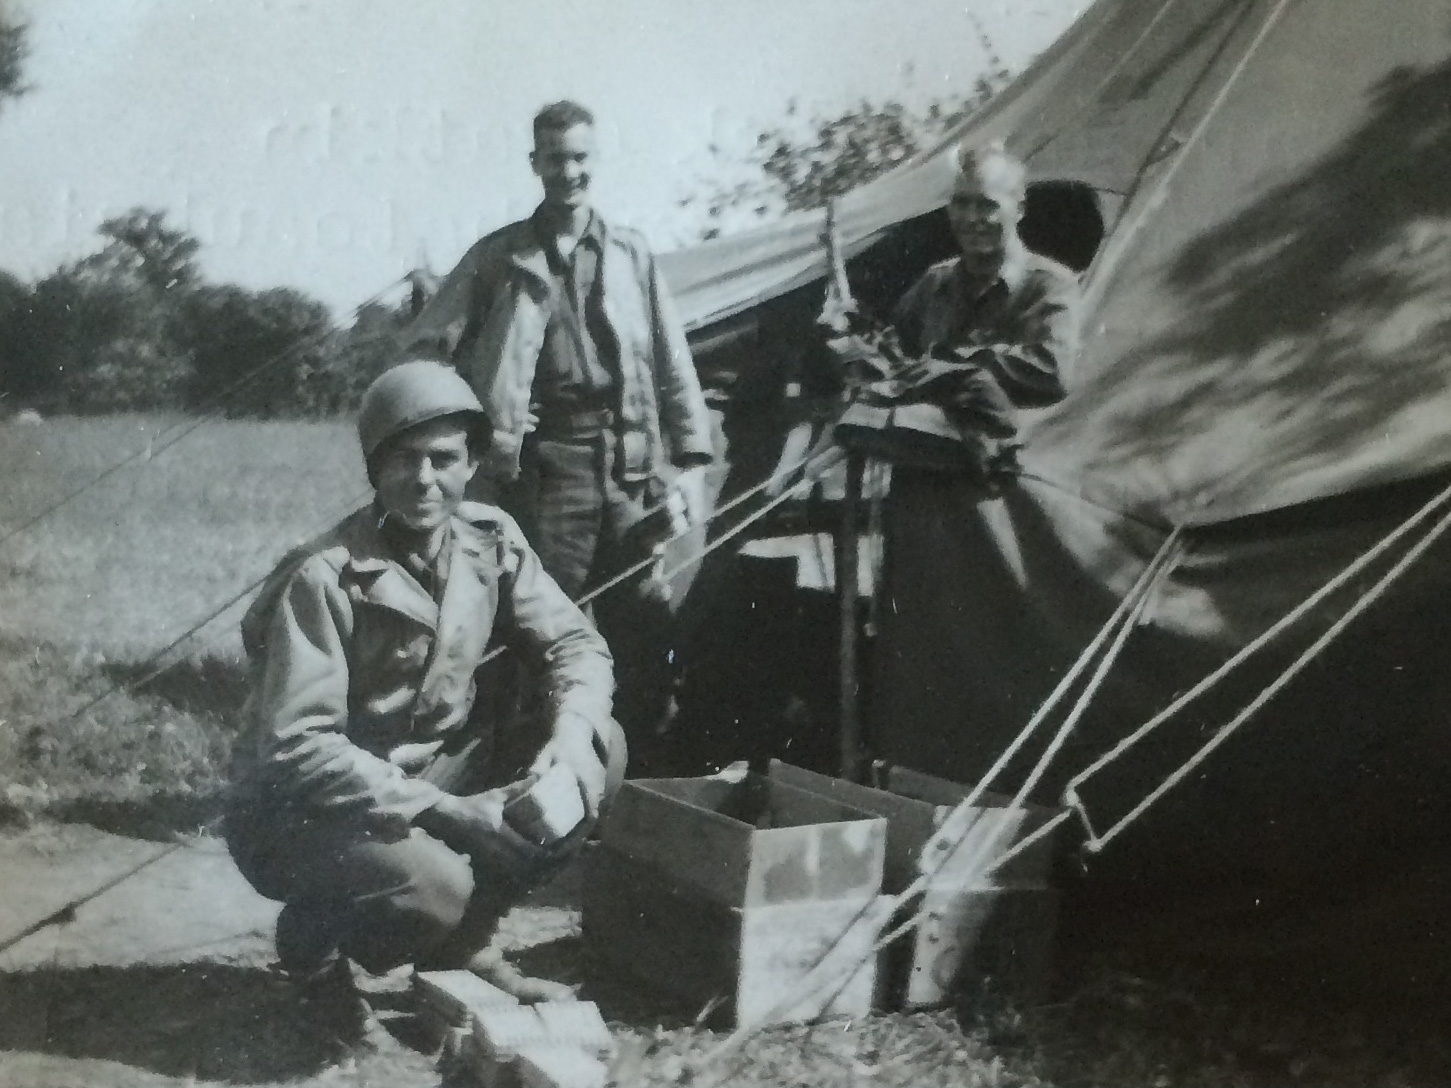 France, August 1945